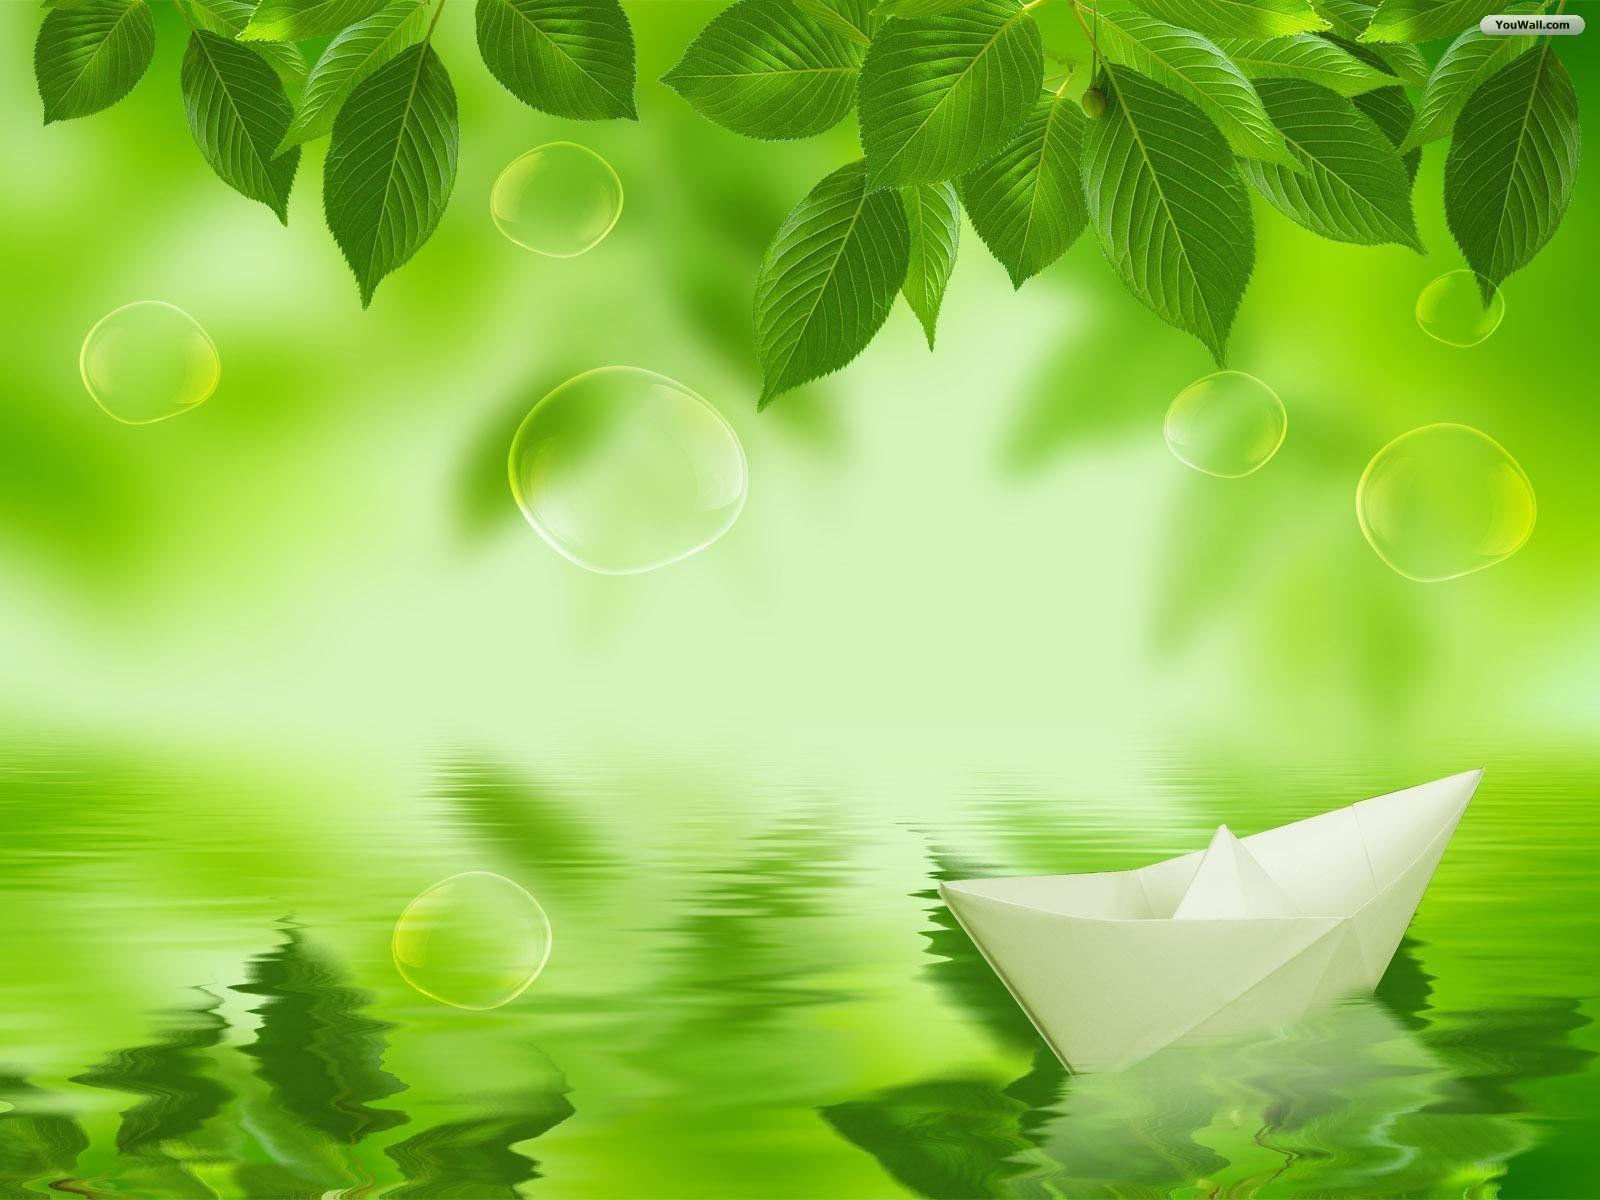 Green Leaves Wallpapers Wallpaper Cave